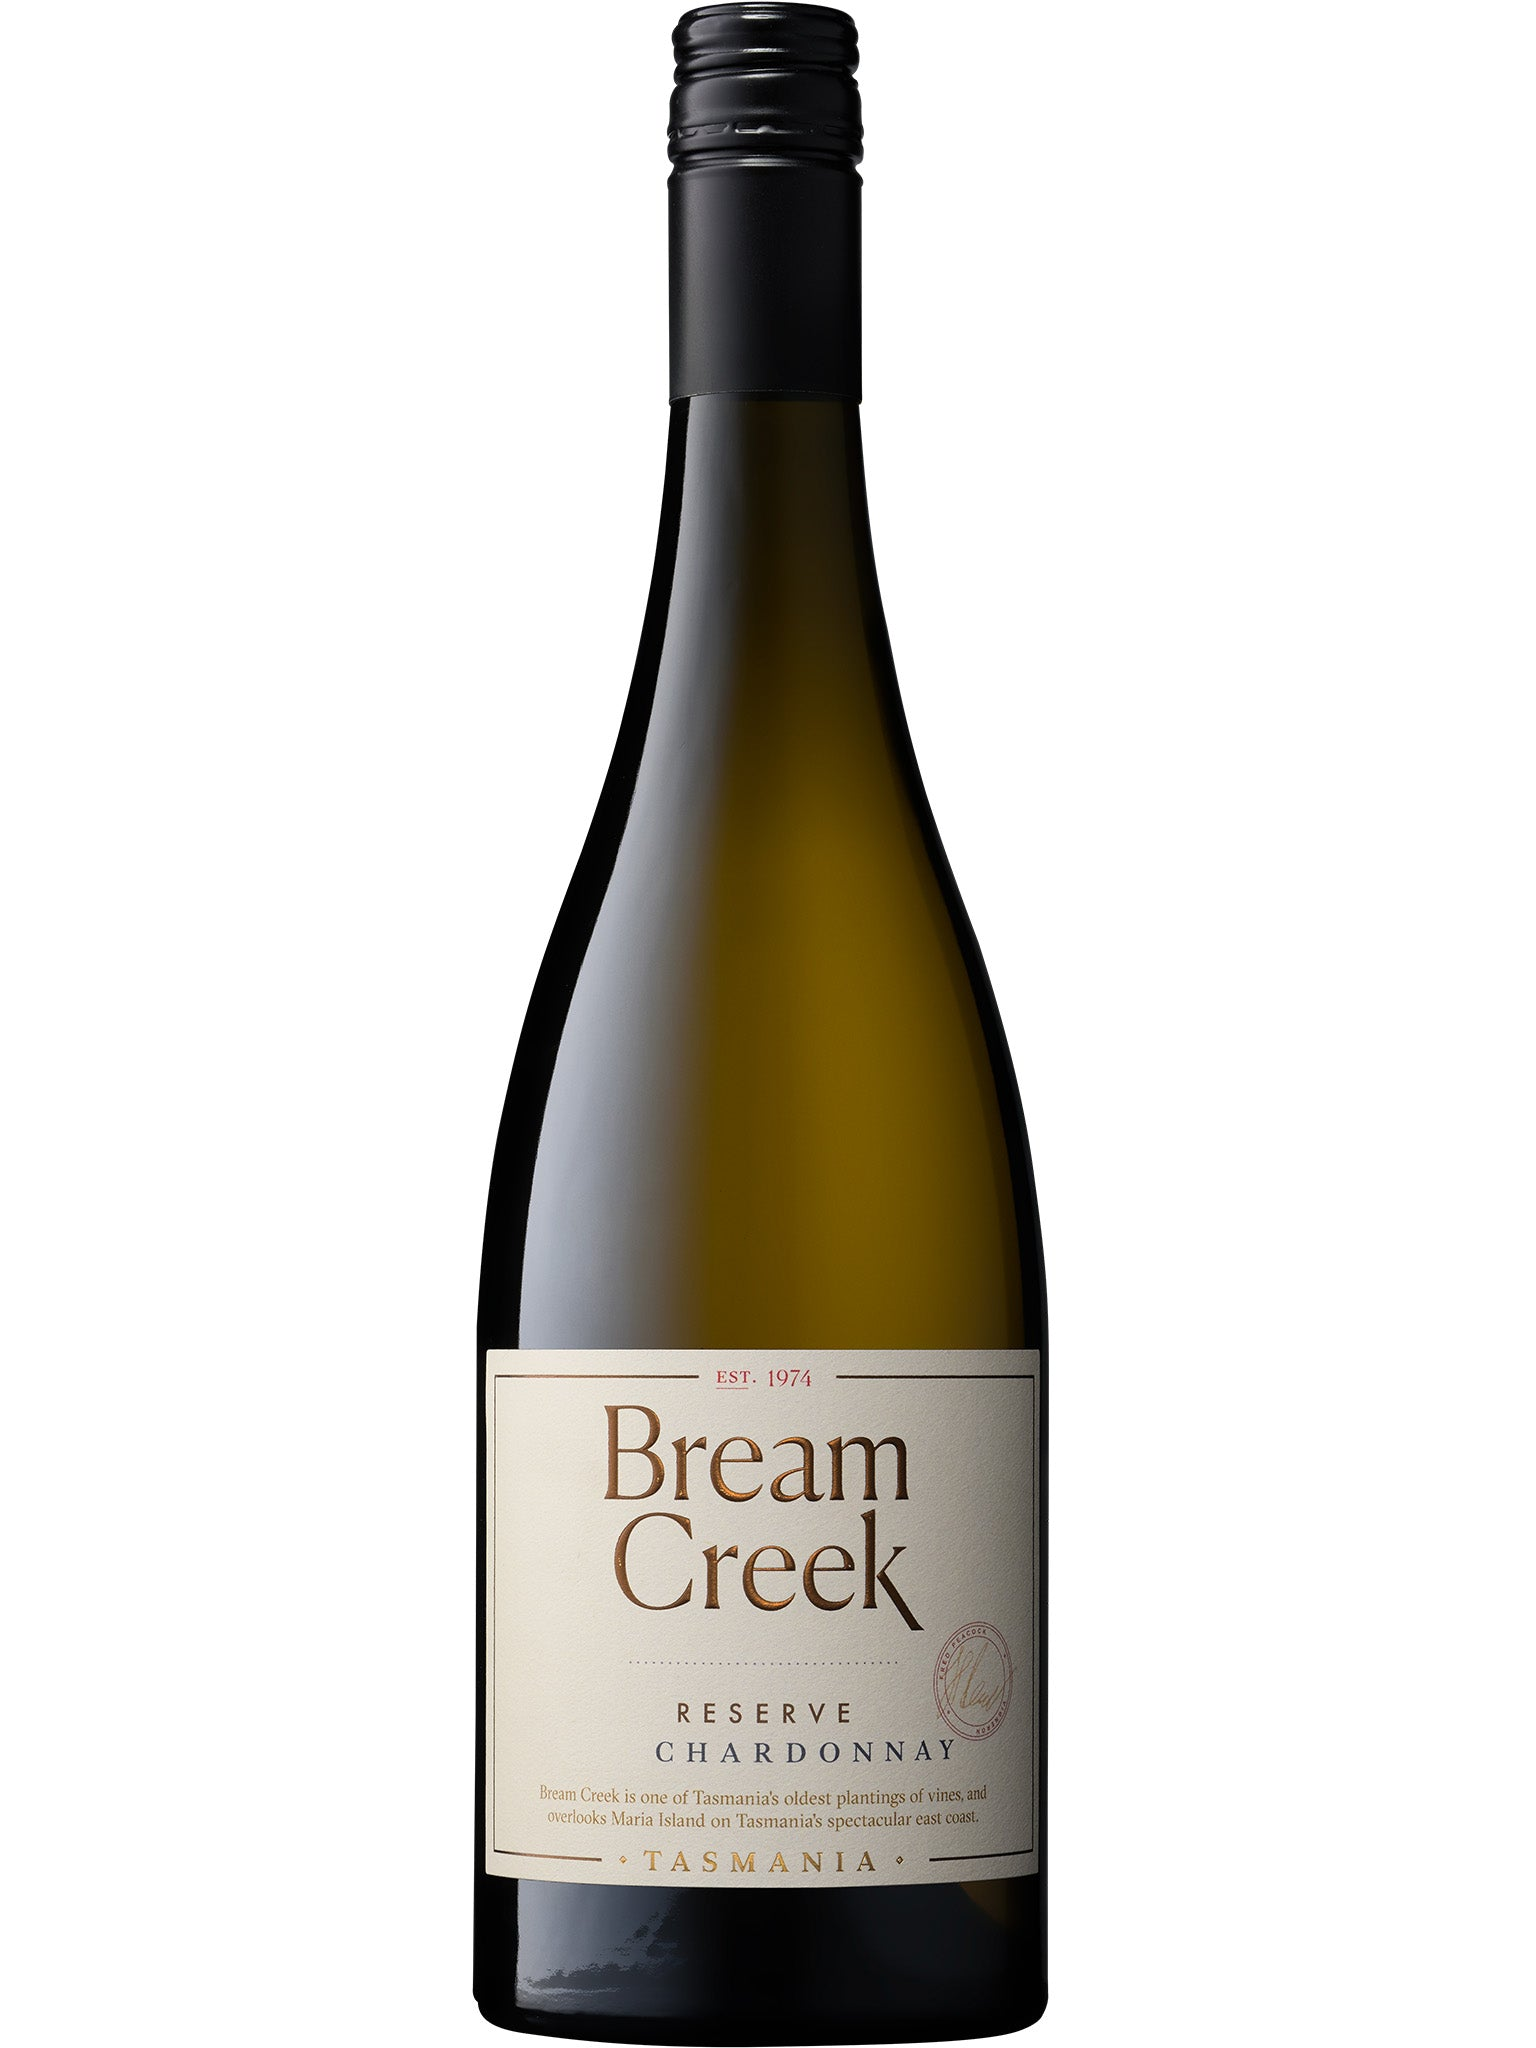 Bream Creek Reserve Chardonnay 6pk 2017